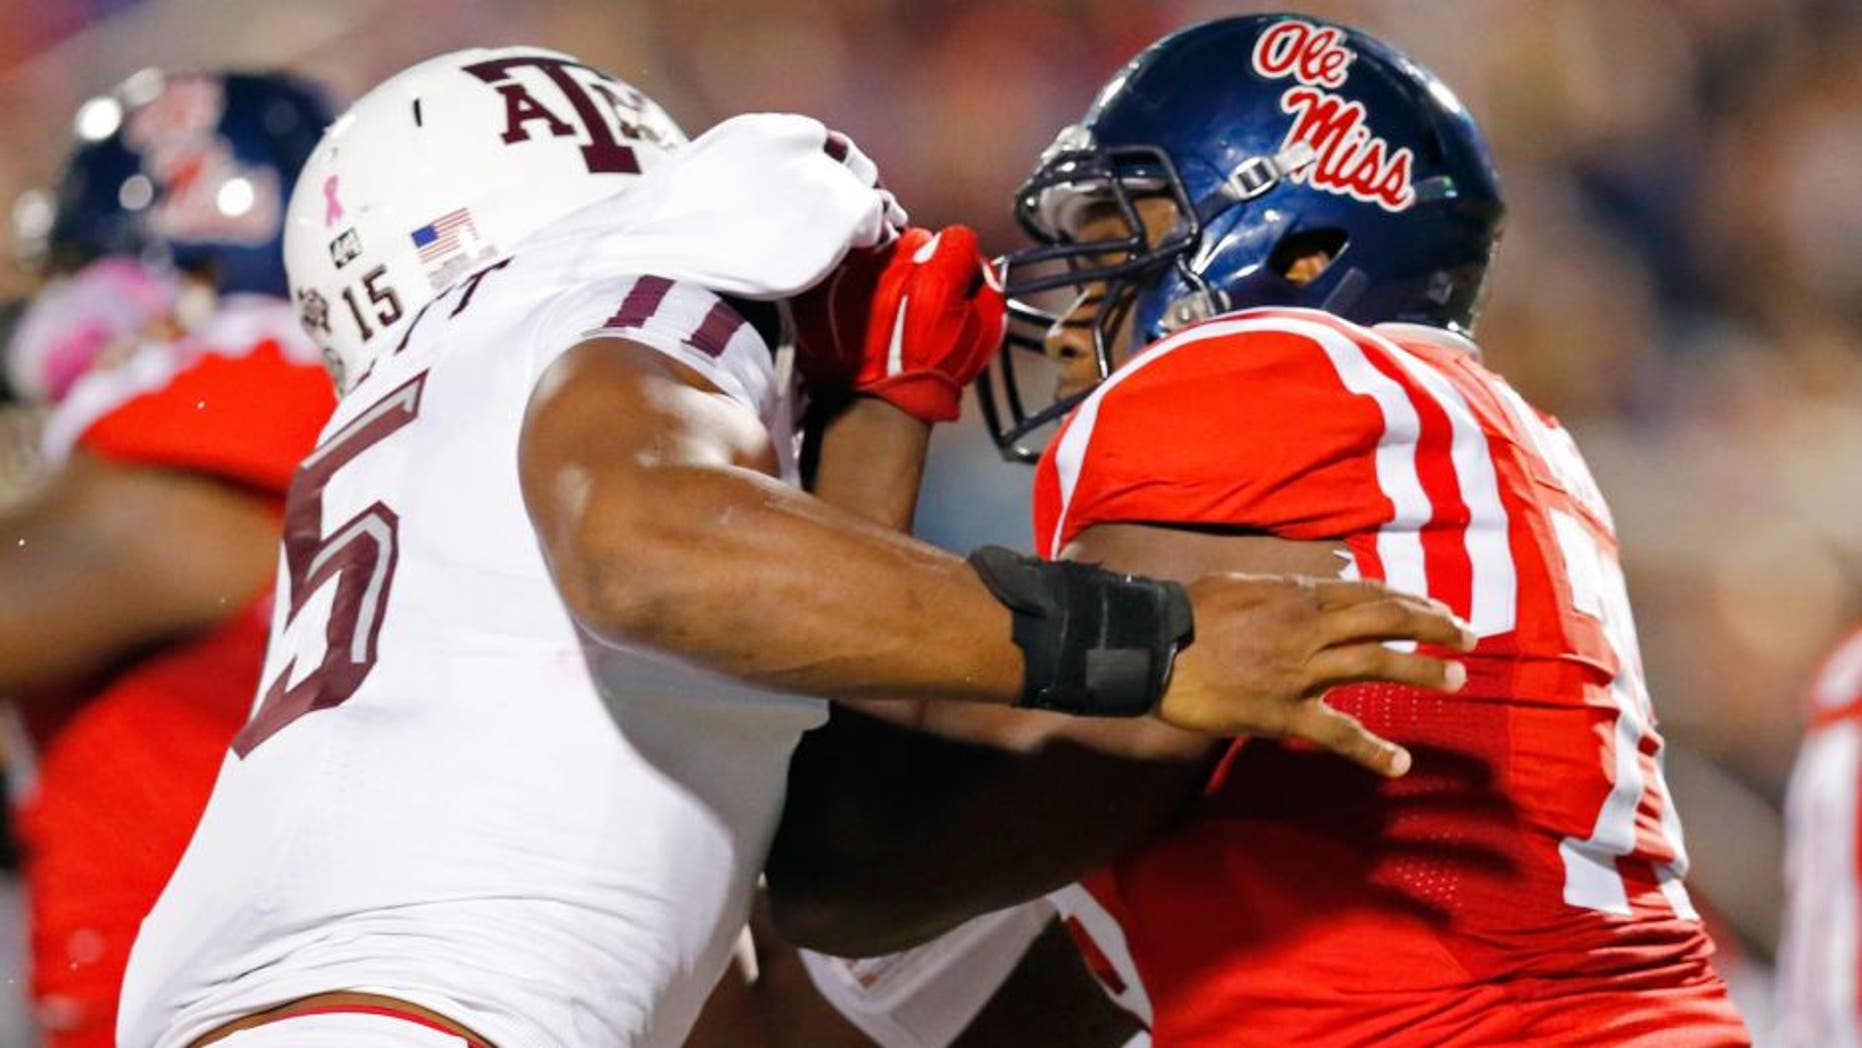 Texas A&M defensive lineman Myles Garrett (15) is locked up by Mississippi offensive lineman Laremy Tunsil (78) during the first half of an NCAA college football game in Oxford, Miss., Saturday, Oct. 24, 2015. (AP Photo/Rogelio V. Solis)